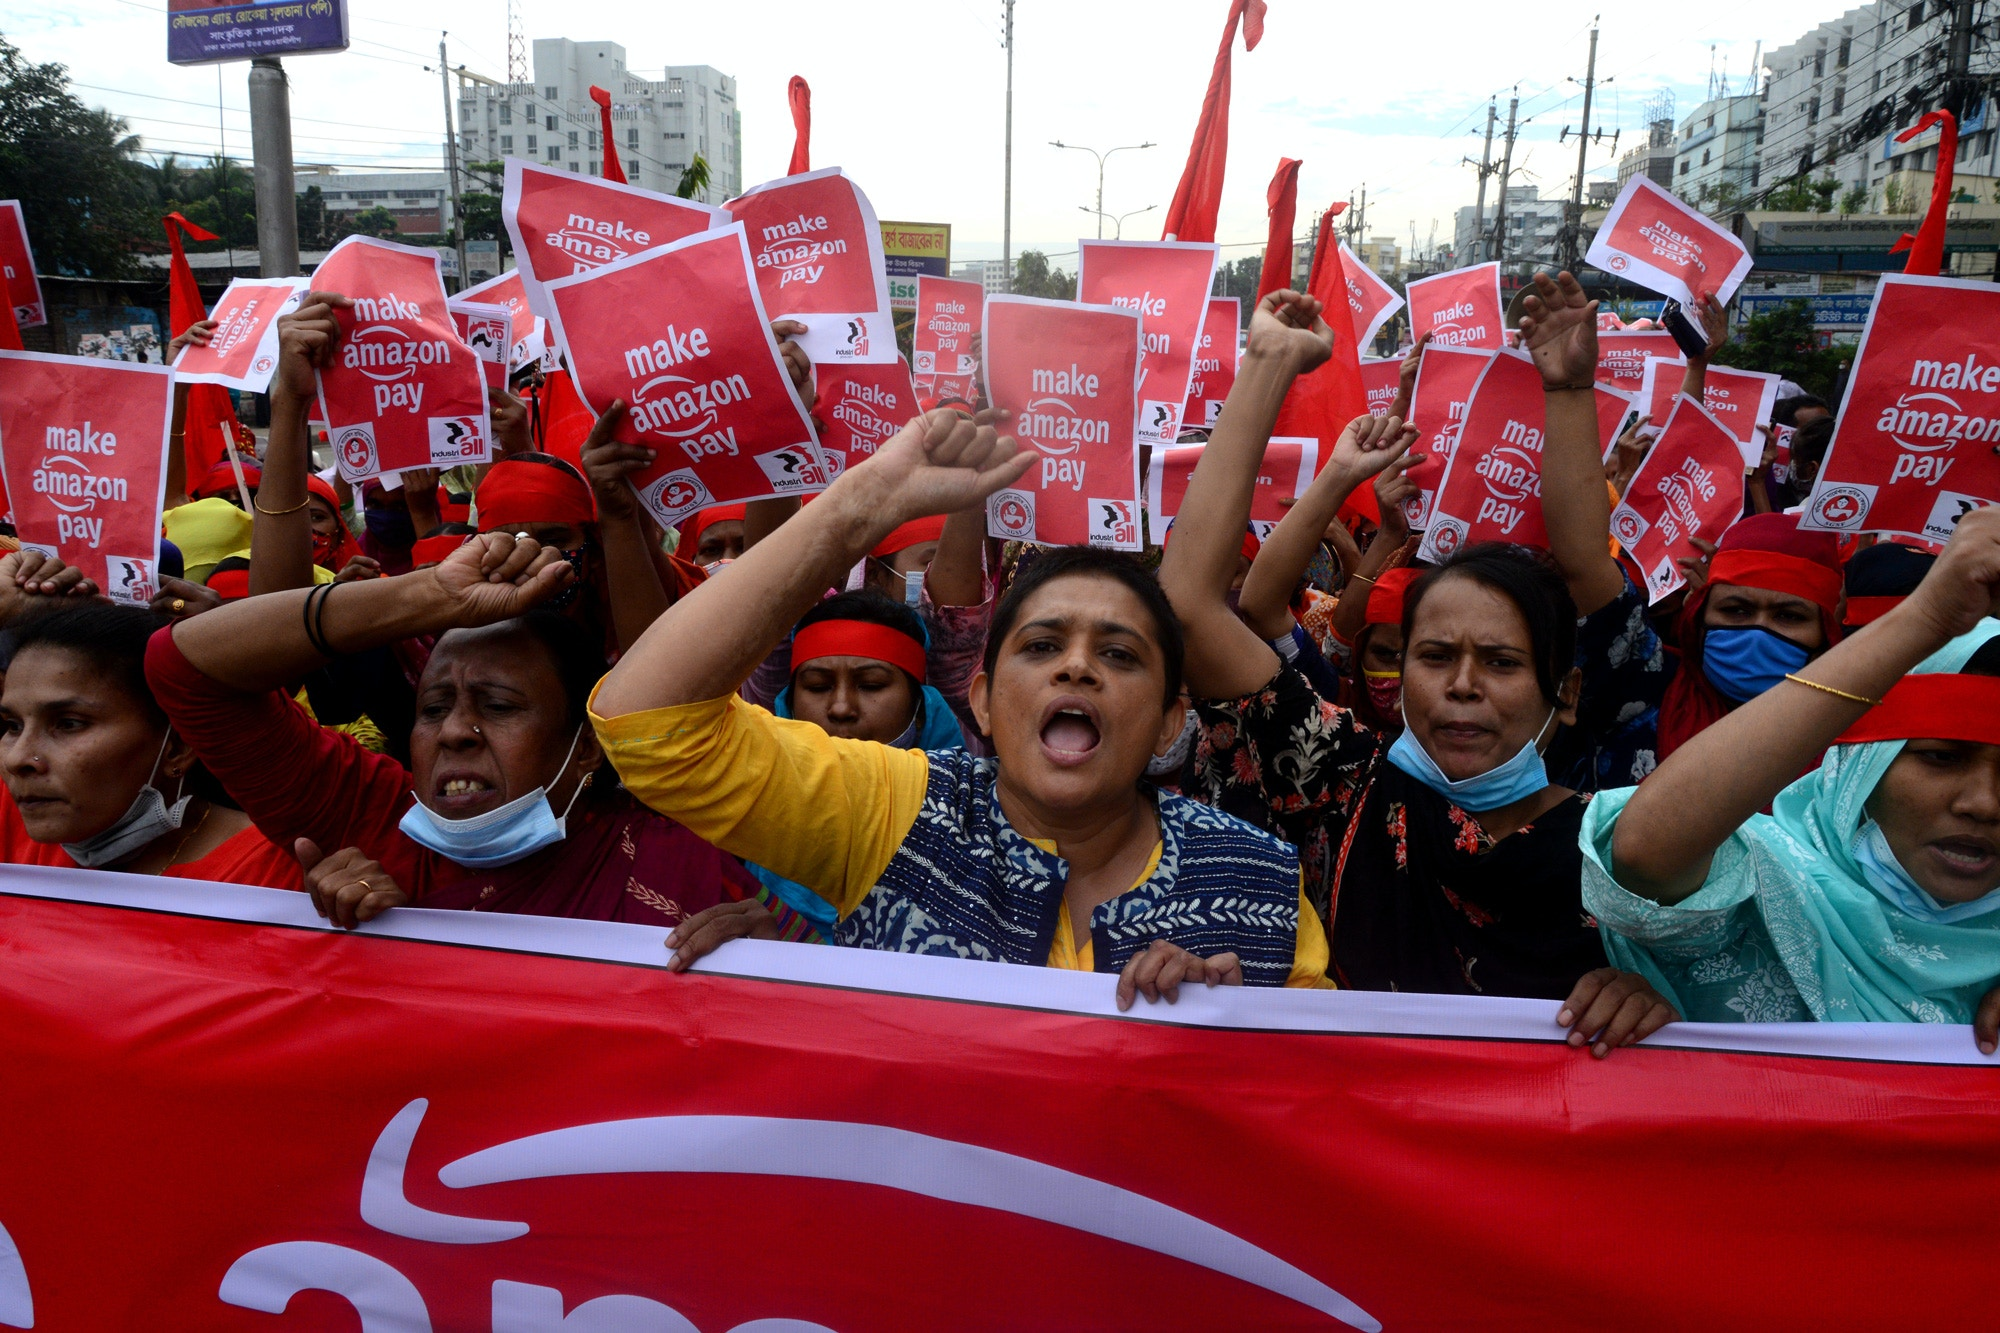 Activists of Sammilito Garments Sramik Federation (Combined Garments Workers Federation) stage a protest procession against the world's leading digital retailer Amazon.com demanding fair wages and union rights for all Amazon supply chain workers in Dhaka, Bangladesh, on November 27, 2020 (Photo by Mamunur Rashid/NurPhoto via Getty Images)